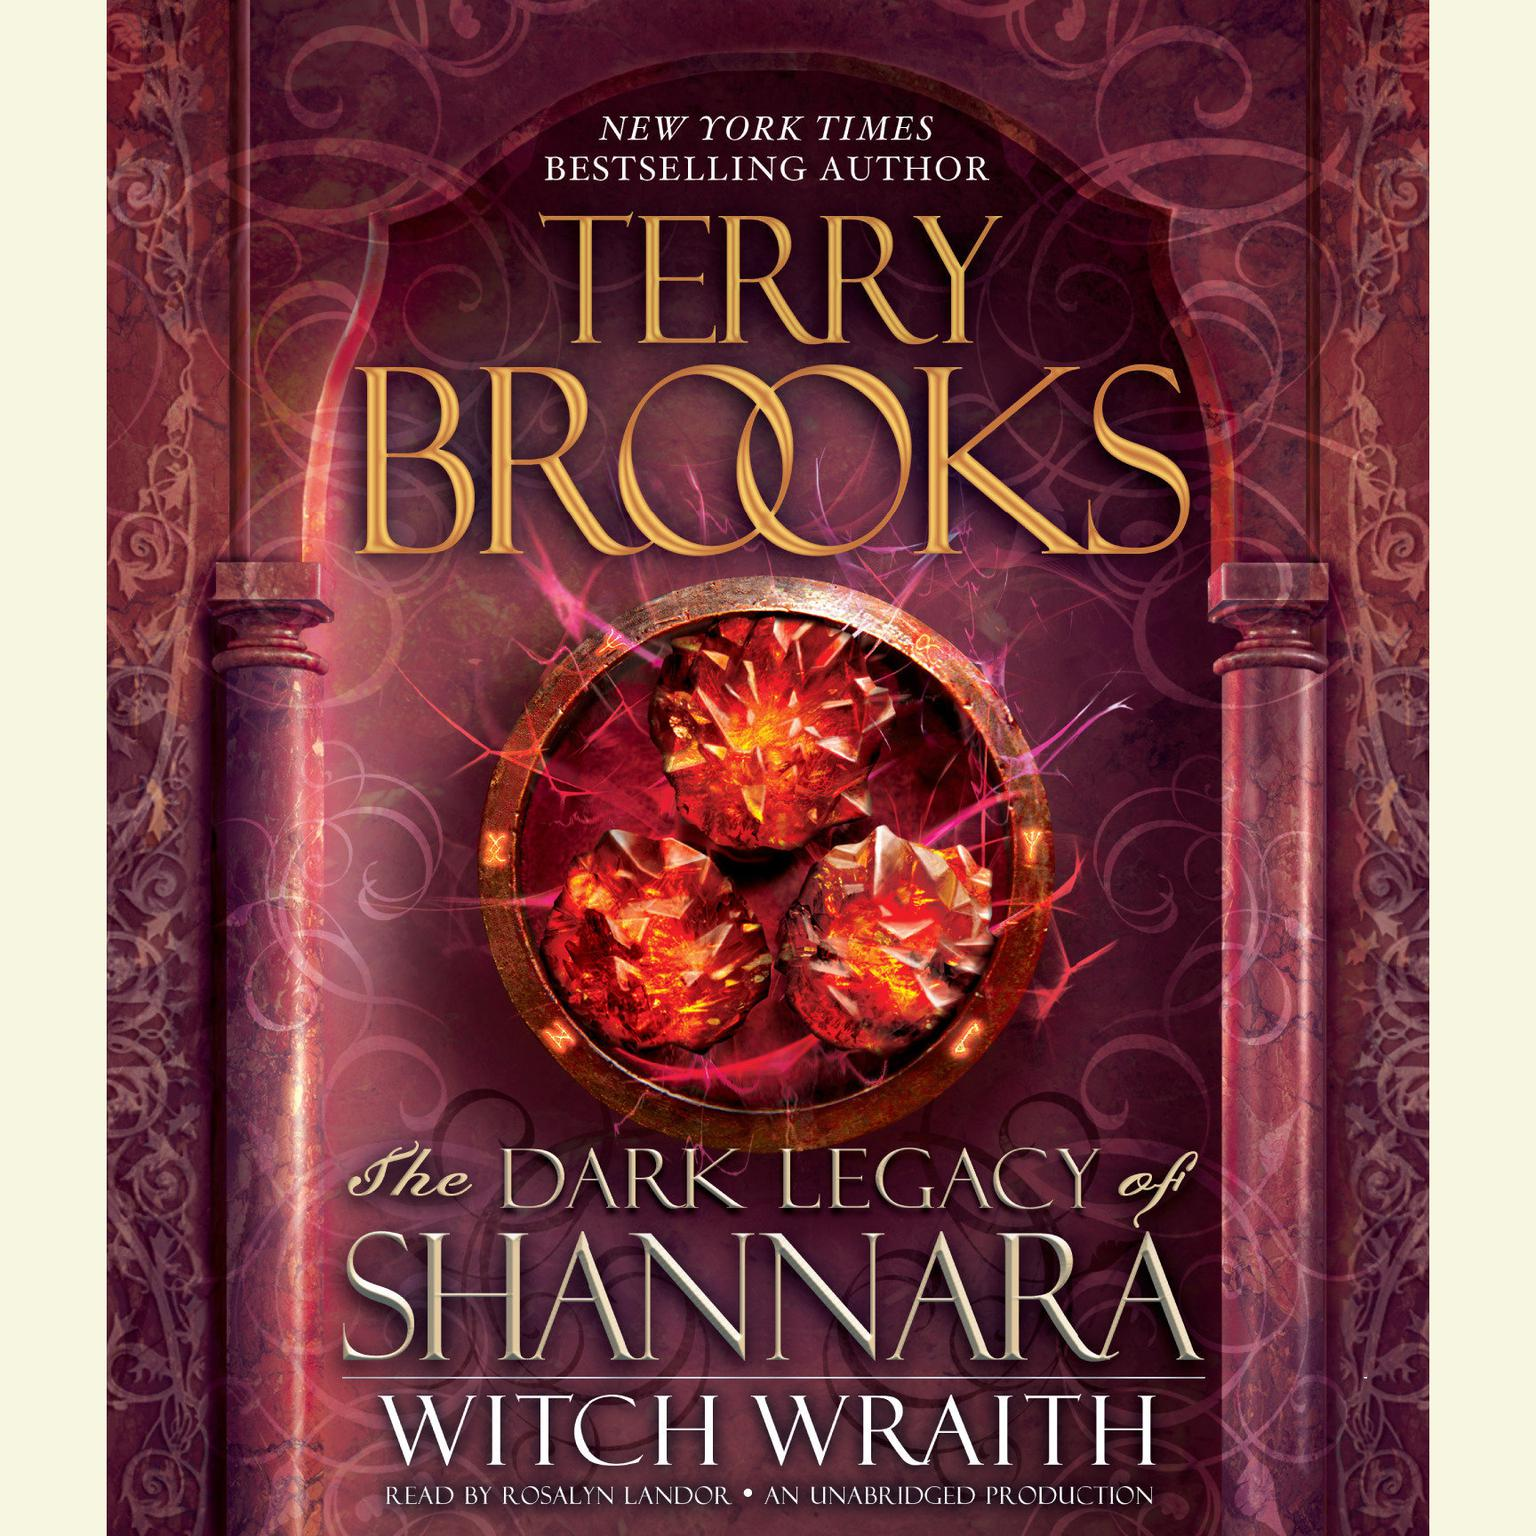 Printable Witch Wraith: The Dark Legacy of Shannara Audiobook Cover Art